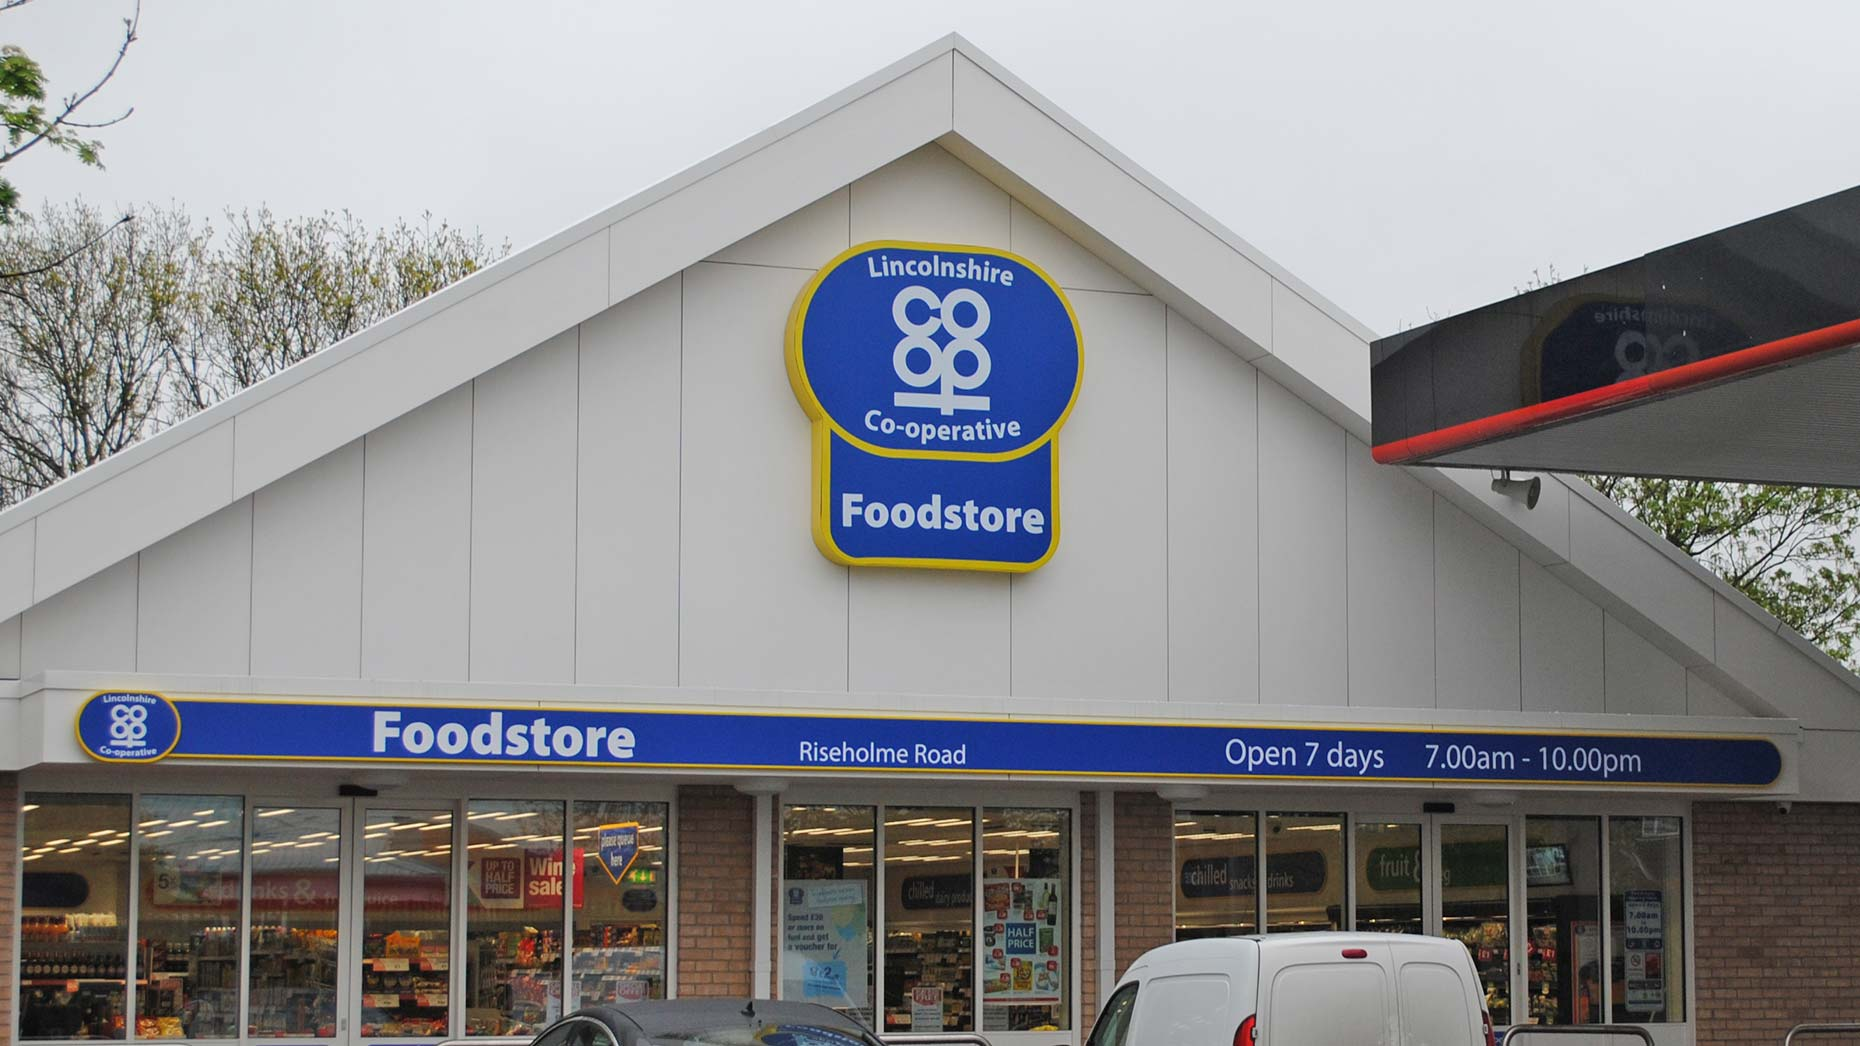 Lincolnshire Co-operative store in Lincoln